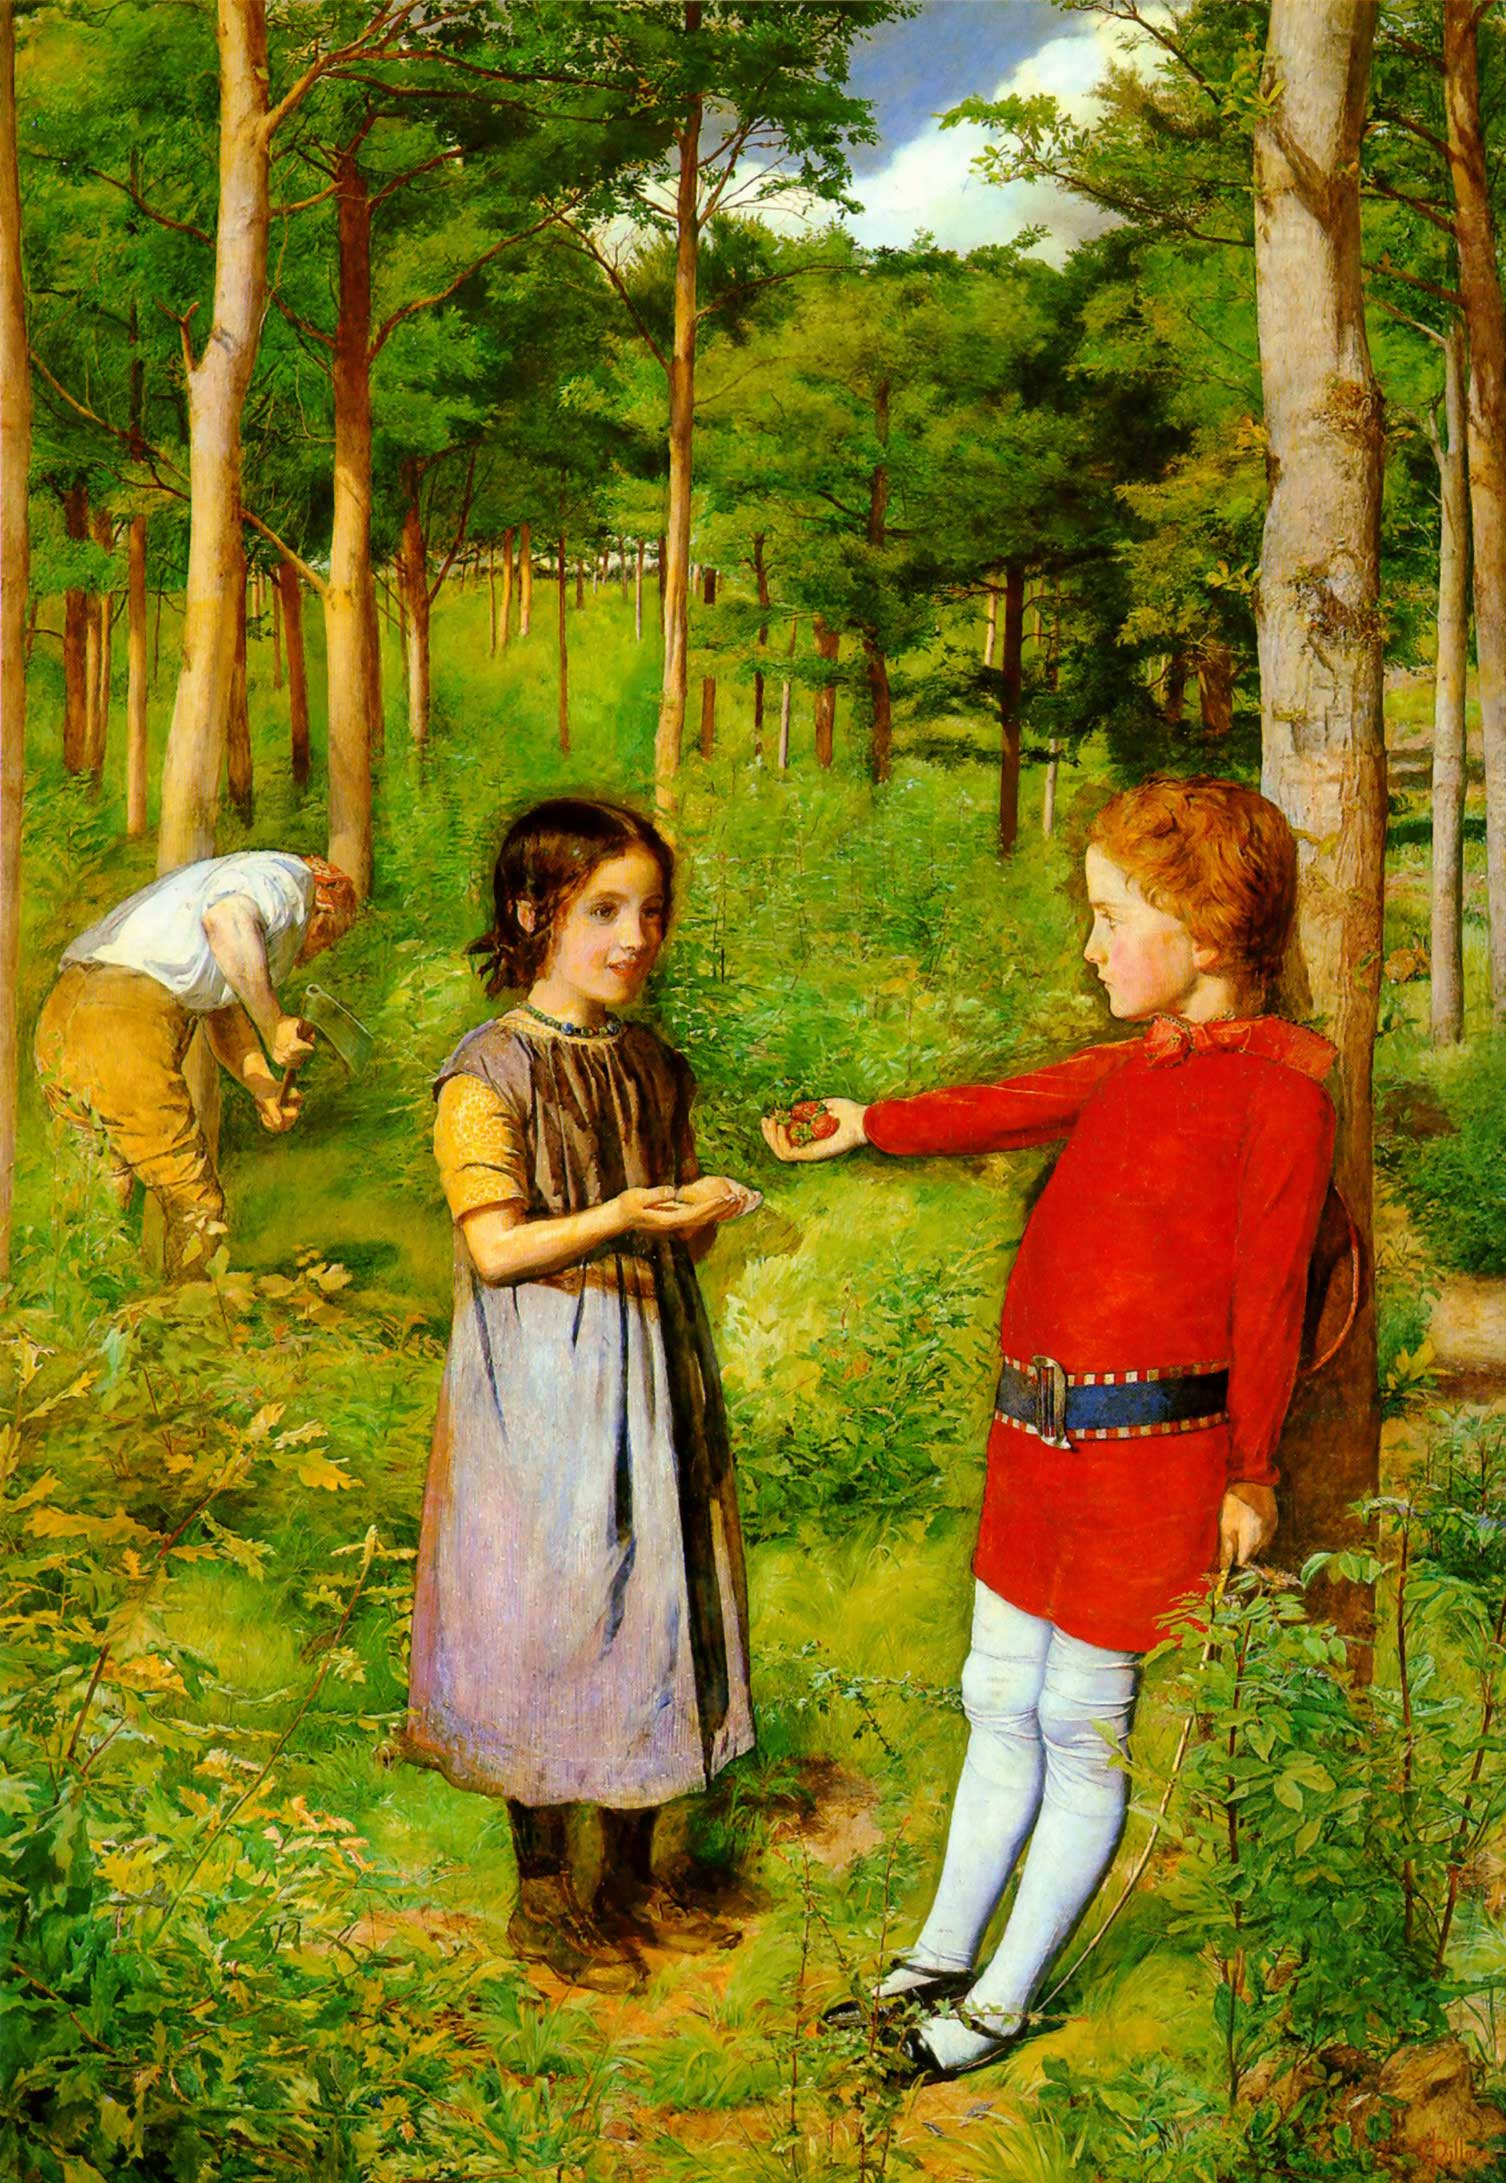 The Woodman's Daughter, 1851